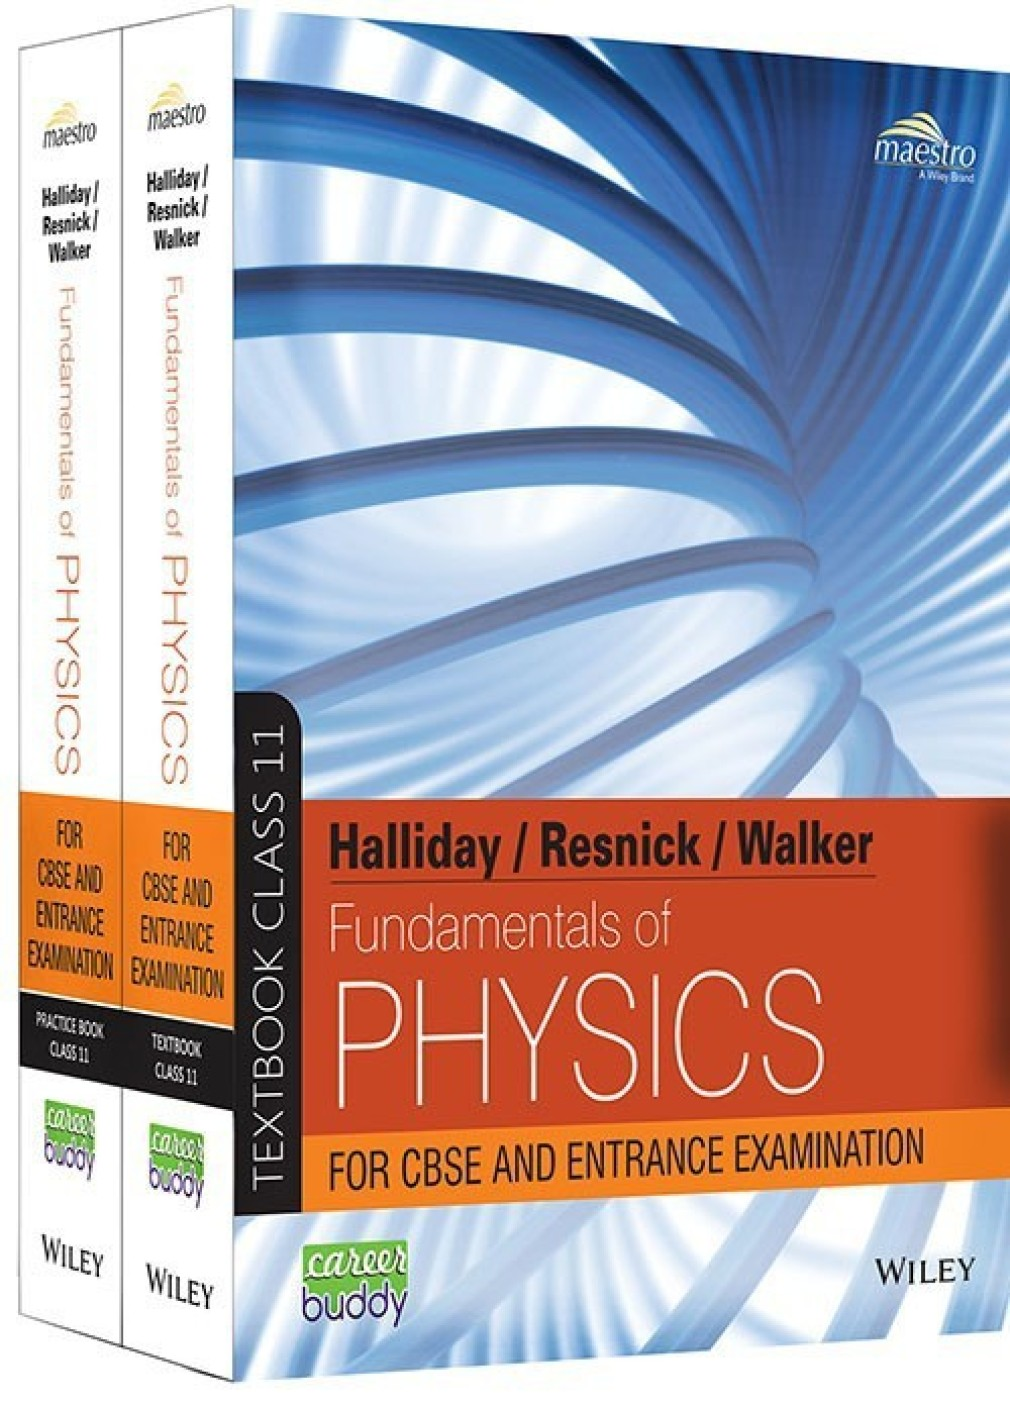 Halliday resnick fundamentals of physics 8th edition instructors solutions manual